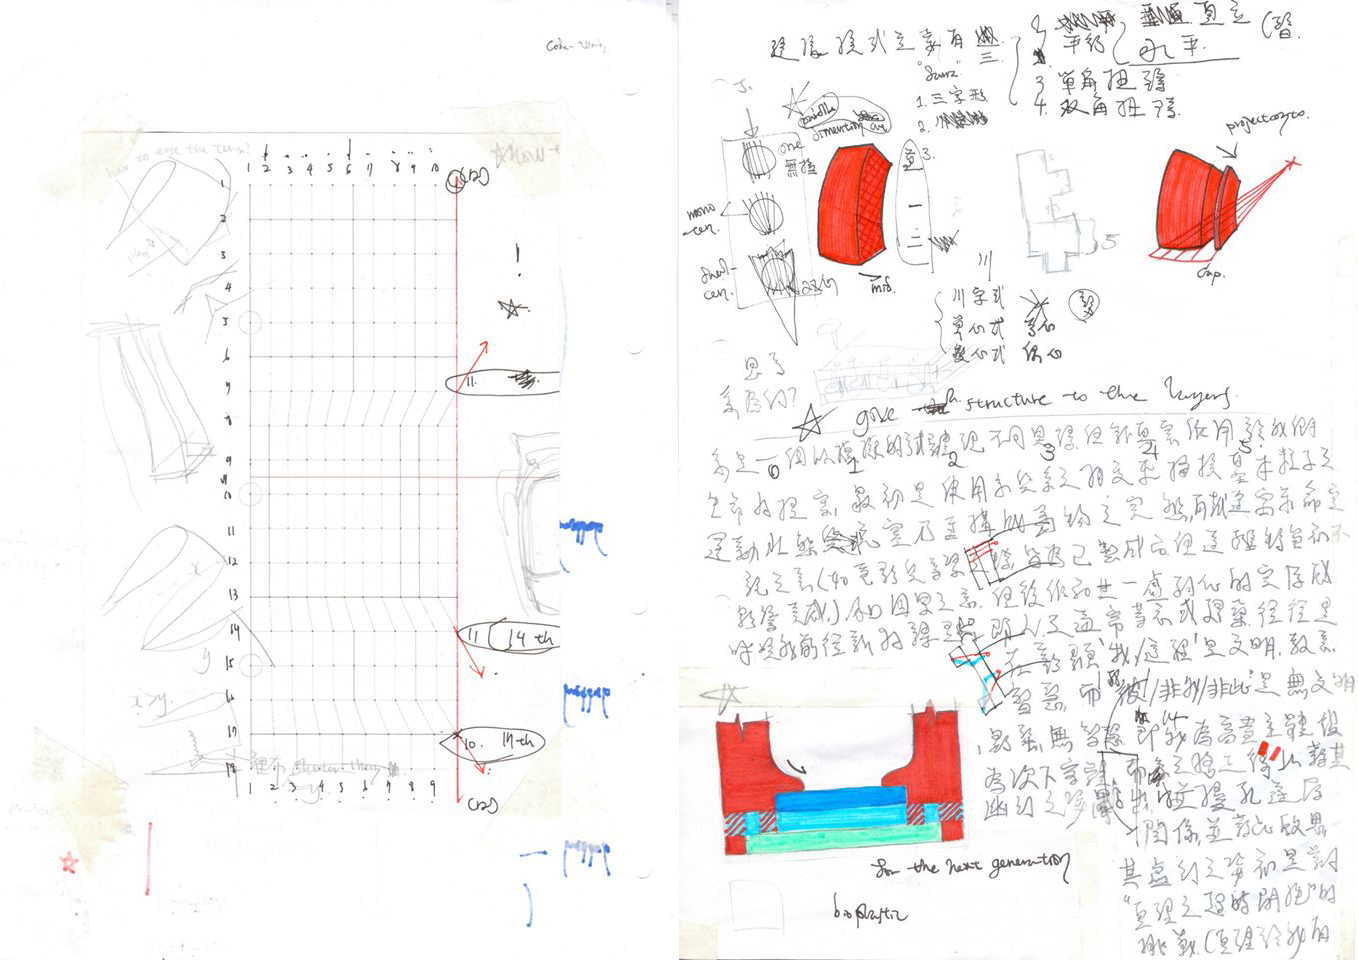 A glimpse of project XI's sketchbook.